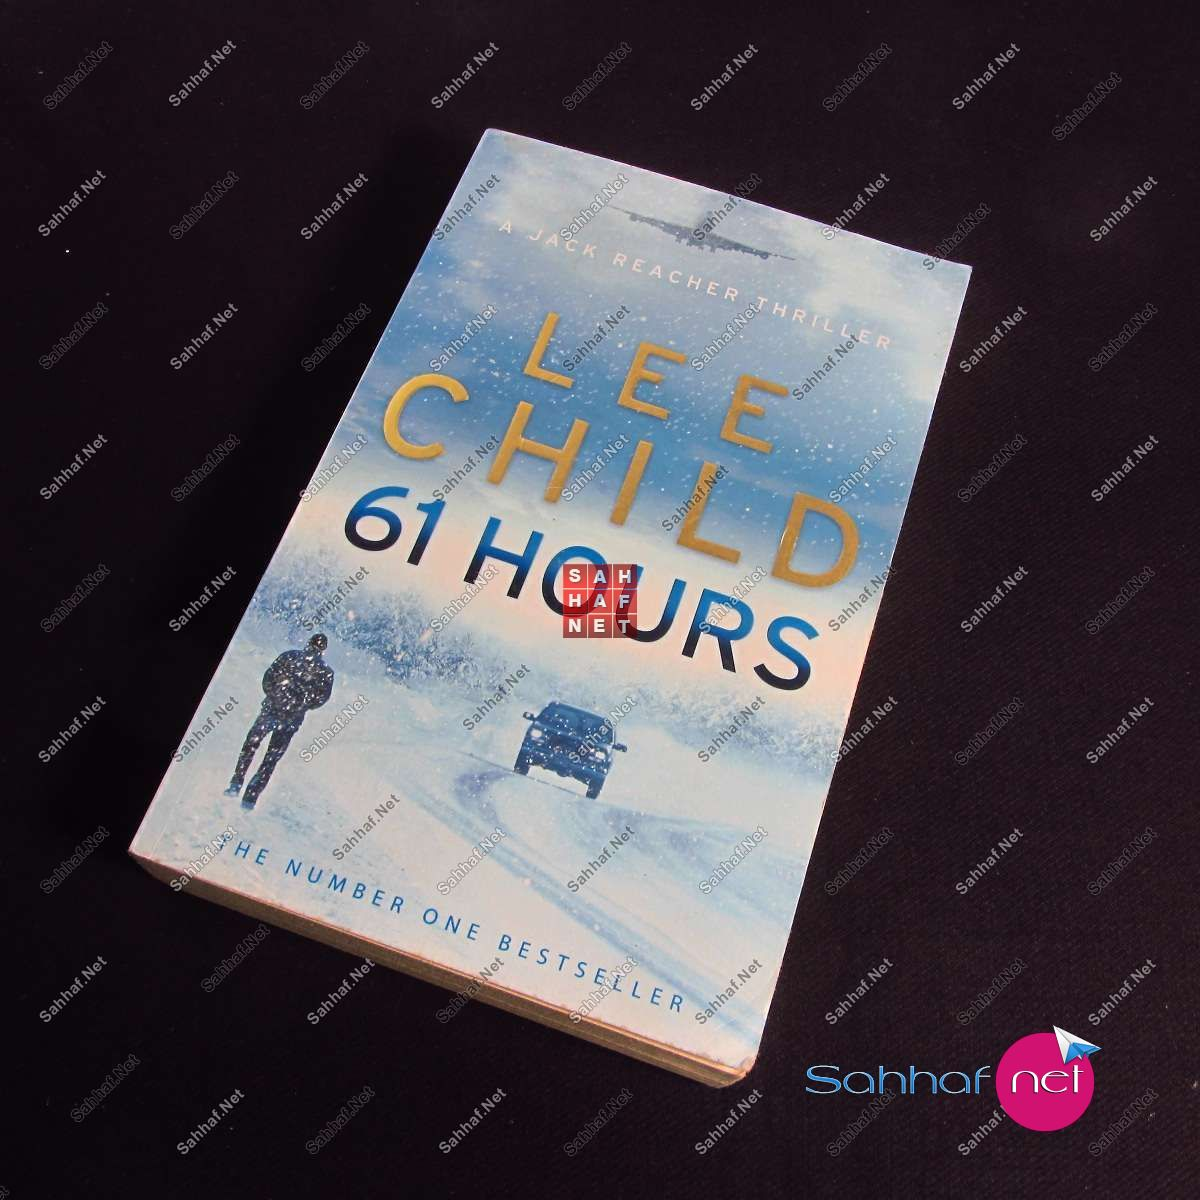 61 HOURS – Lee Child Kitap